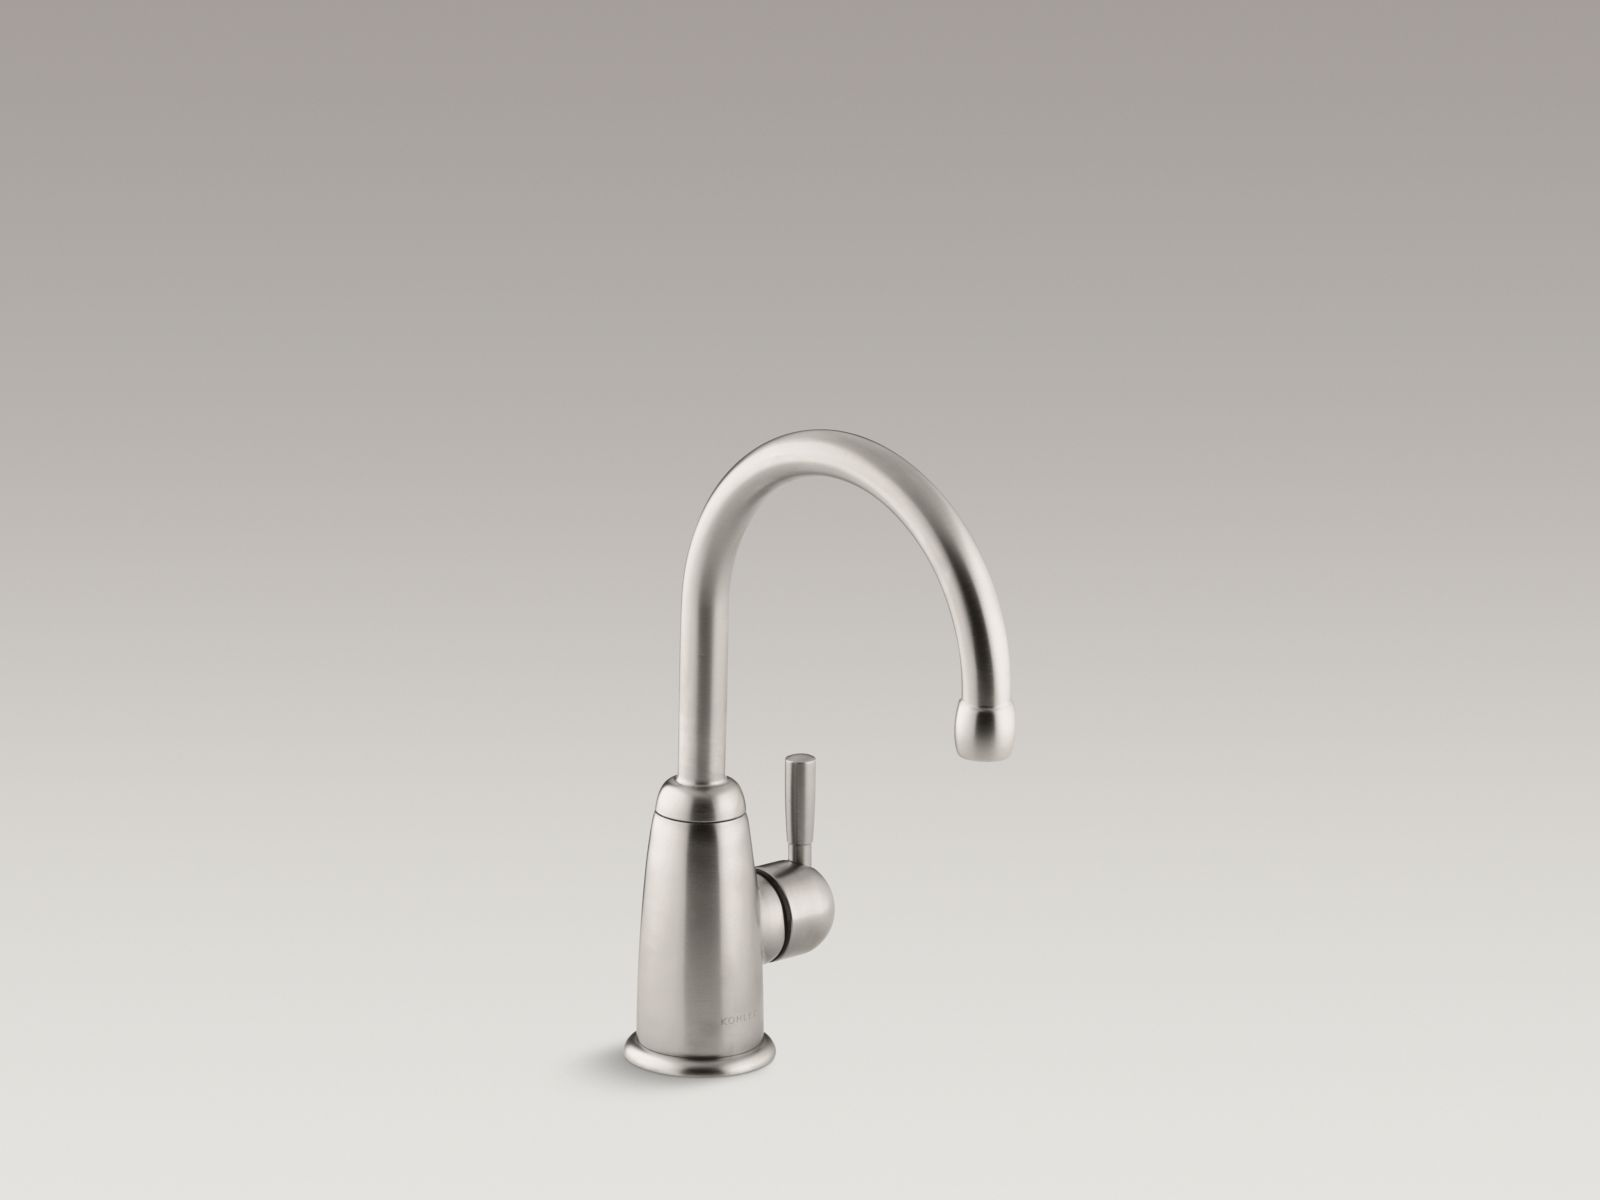 Kohler K-6665-VS Wellspring Single-handle Beverage Faucet with Contemporary Design Vibrant Stainless